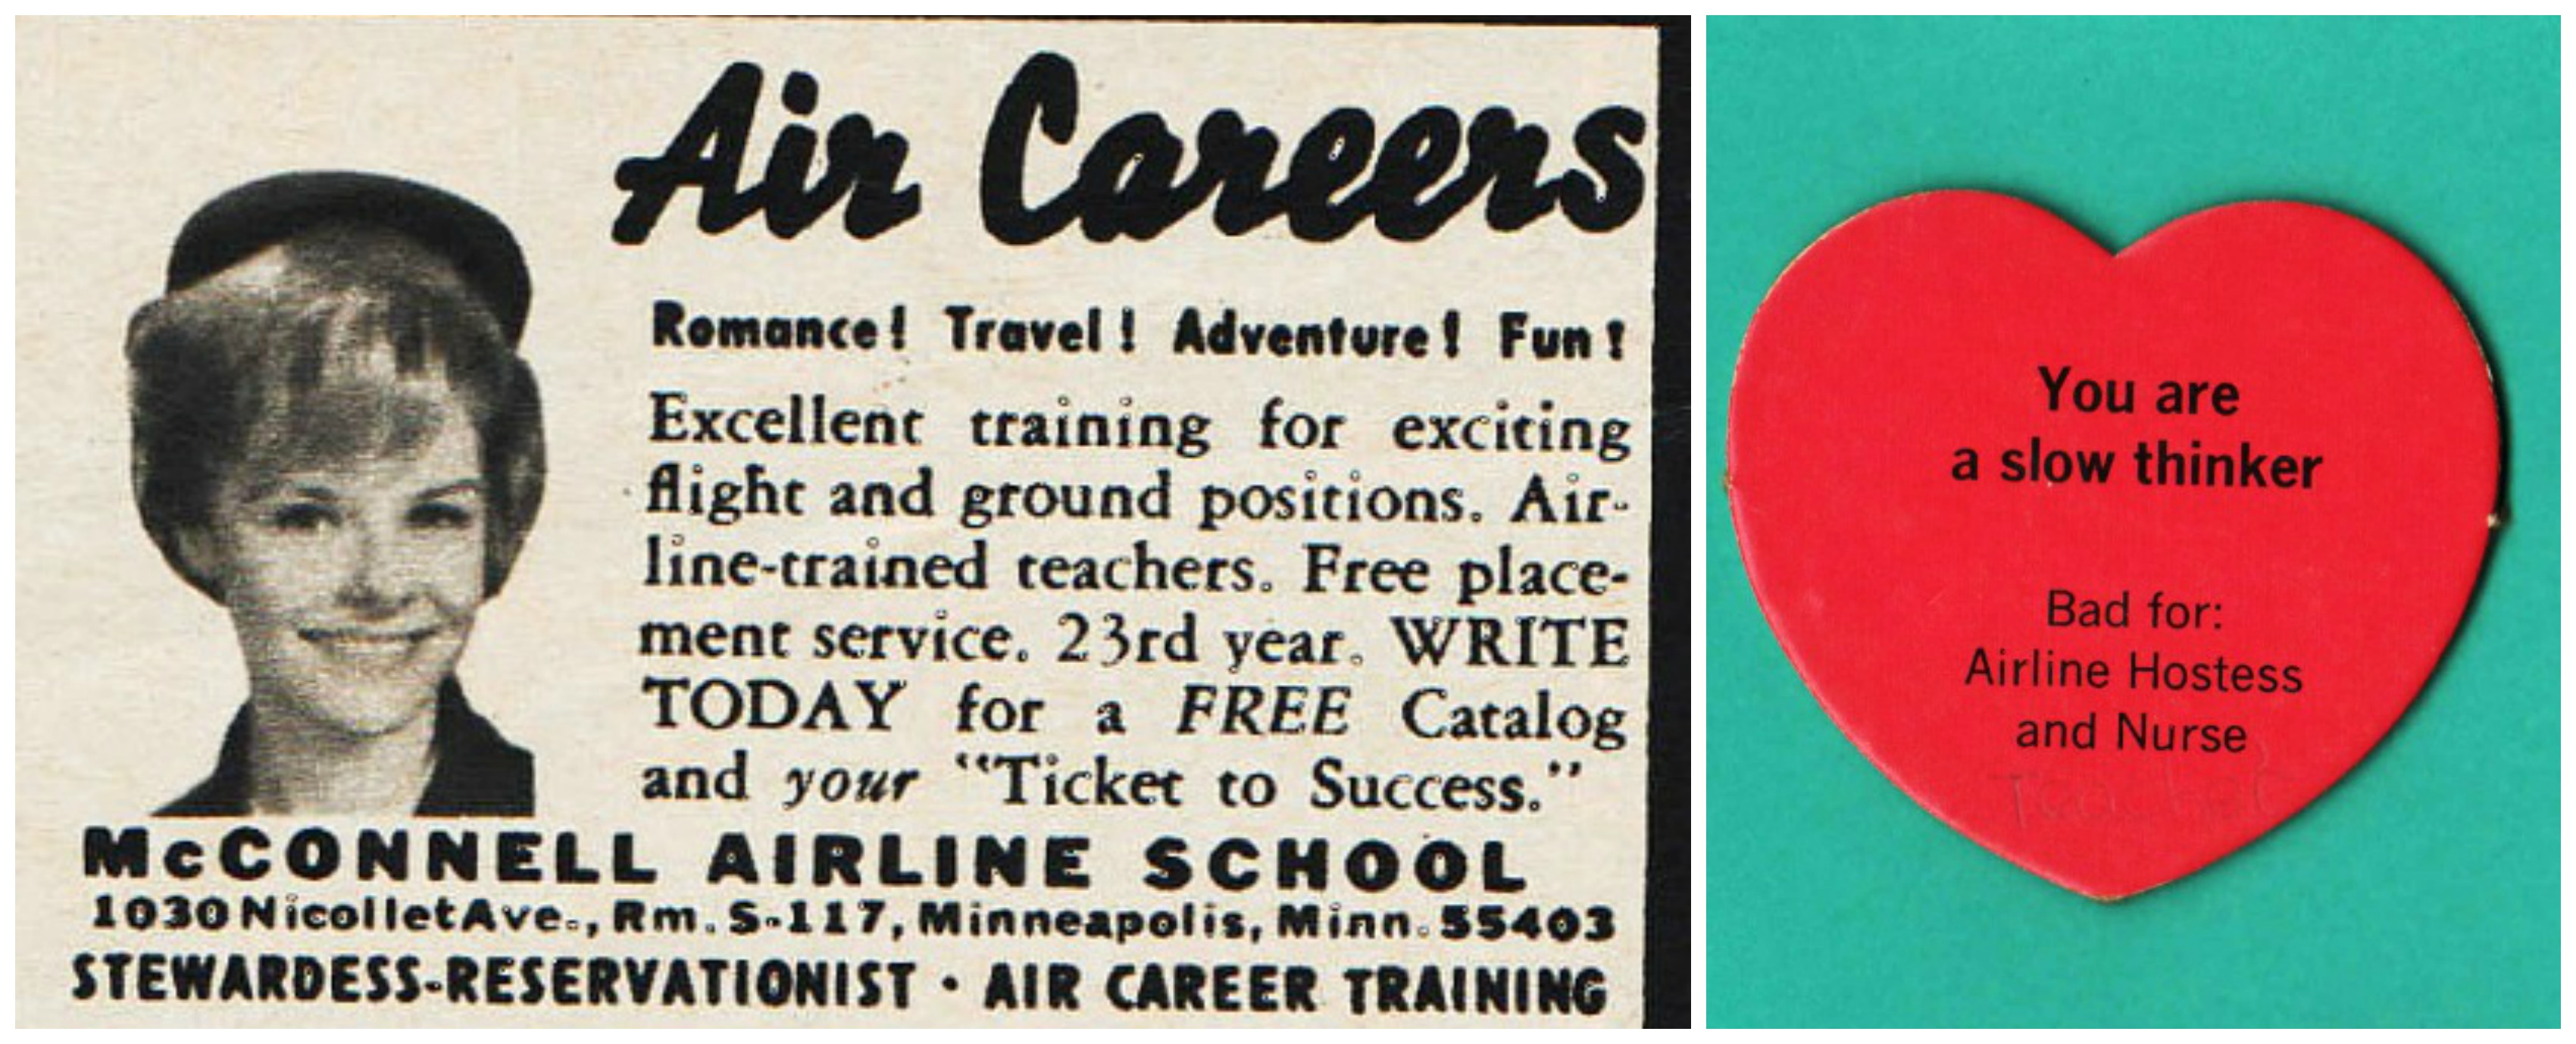 girls games career guidance envisioning the american dream career airline slow thinker